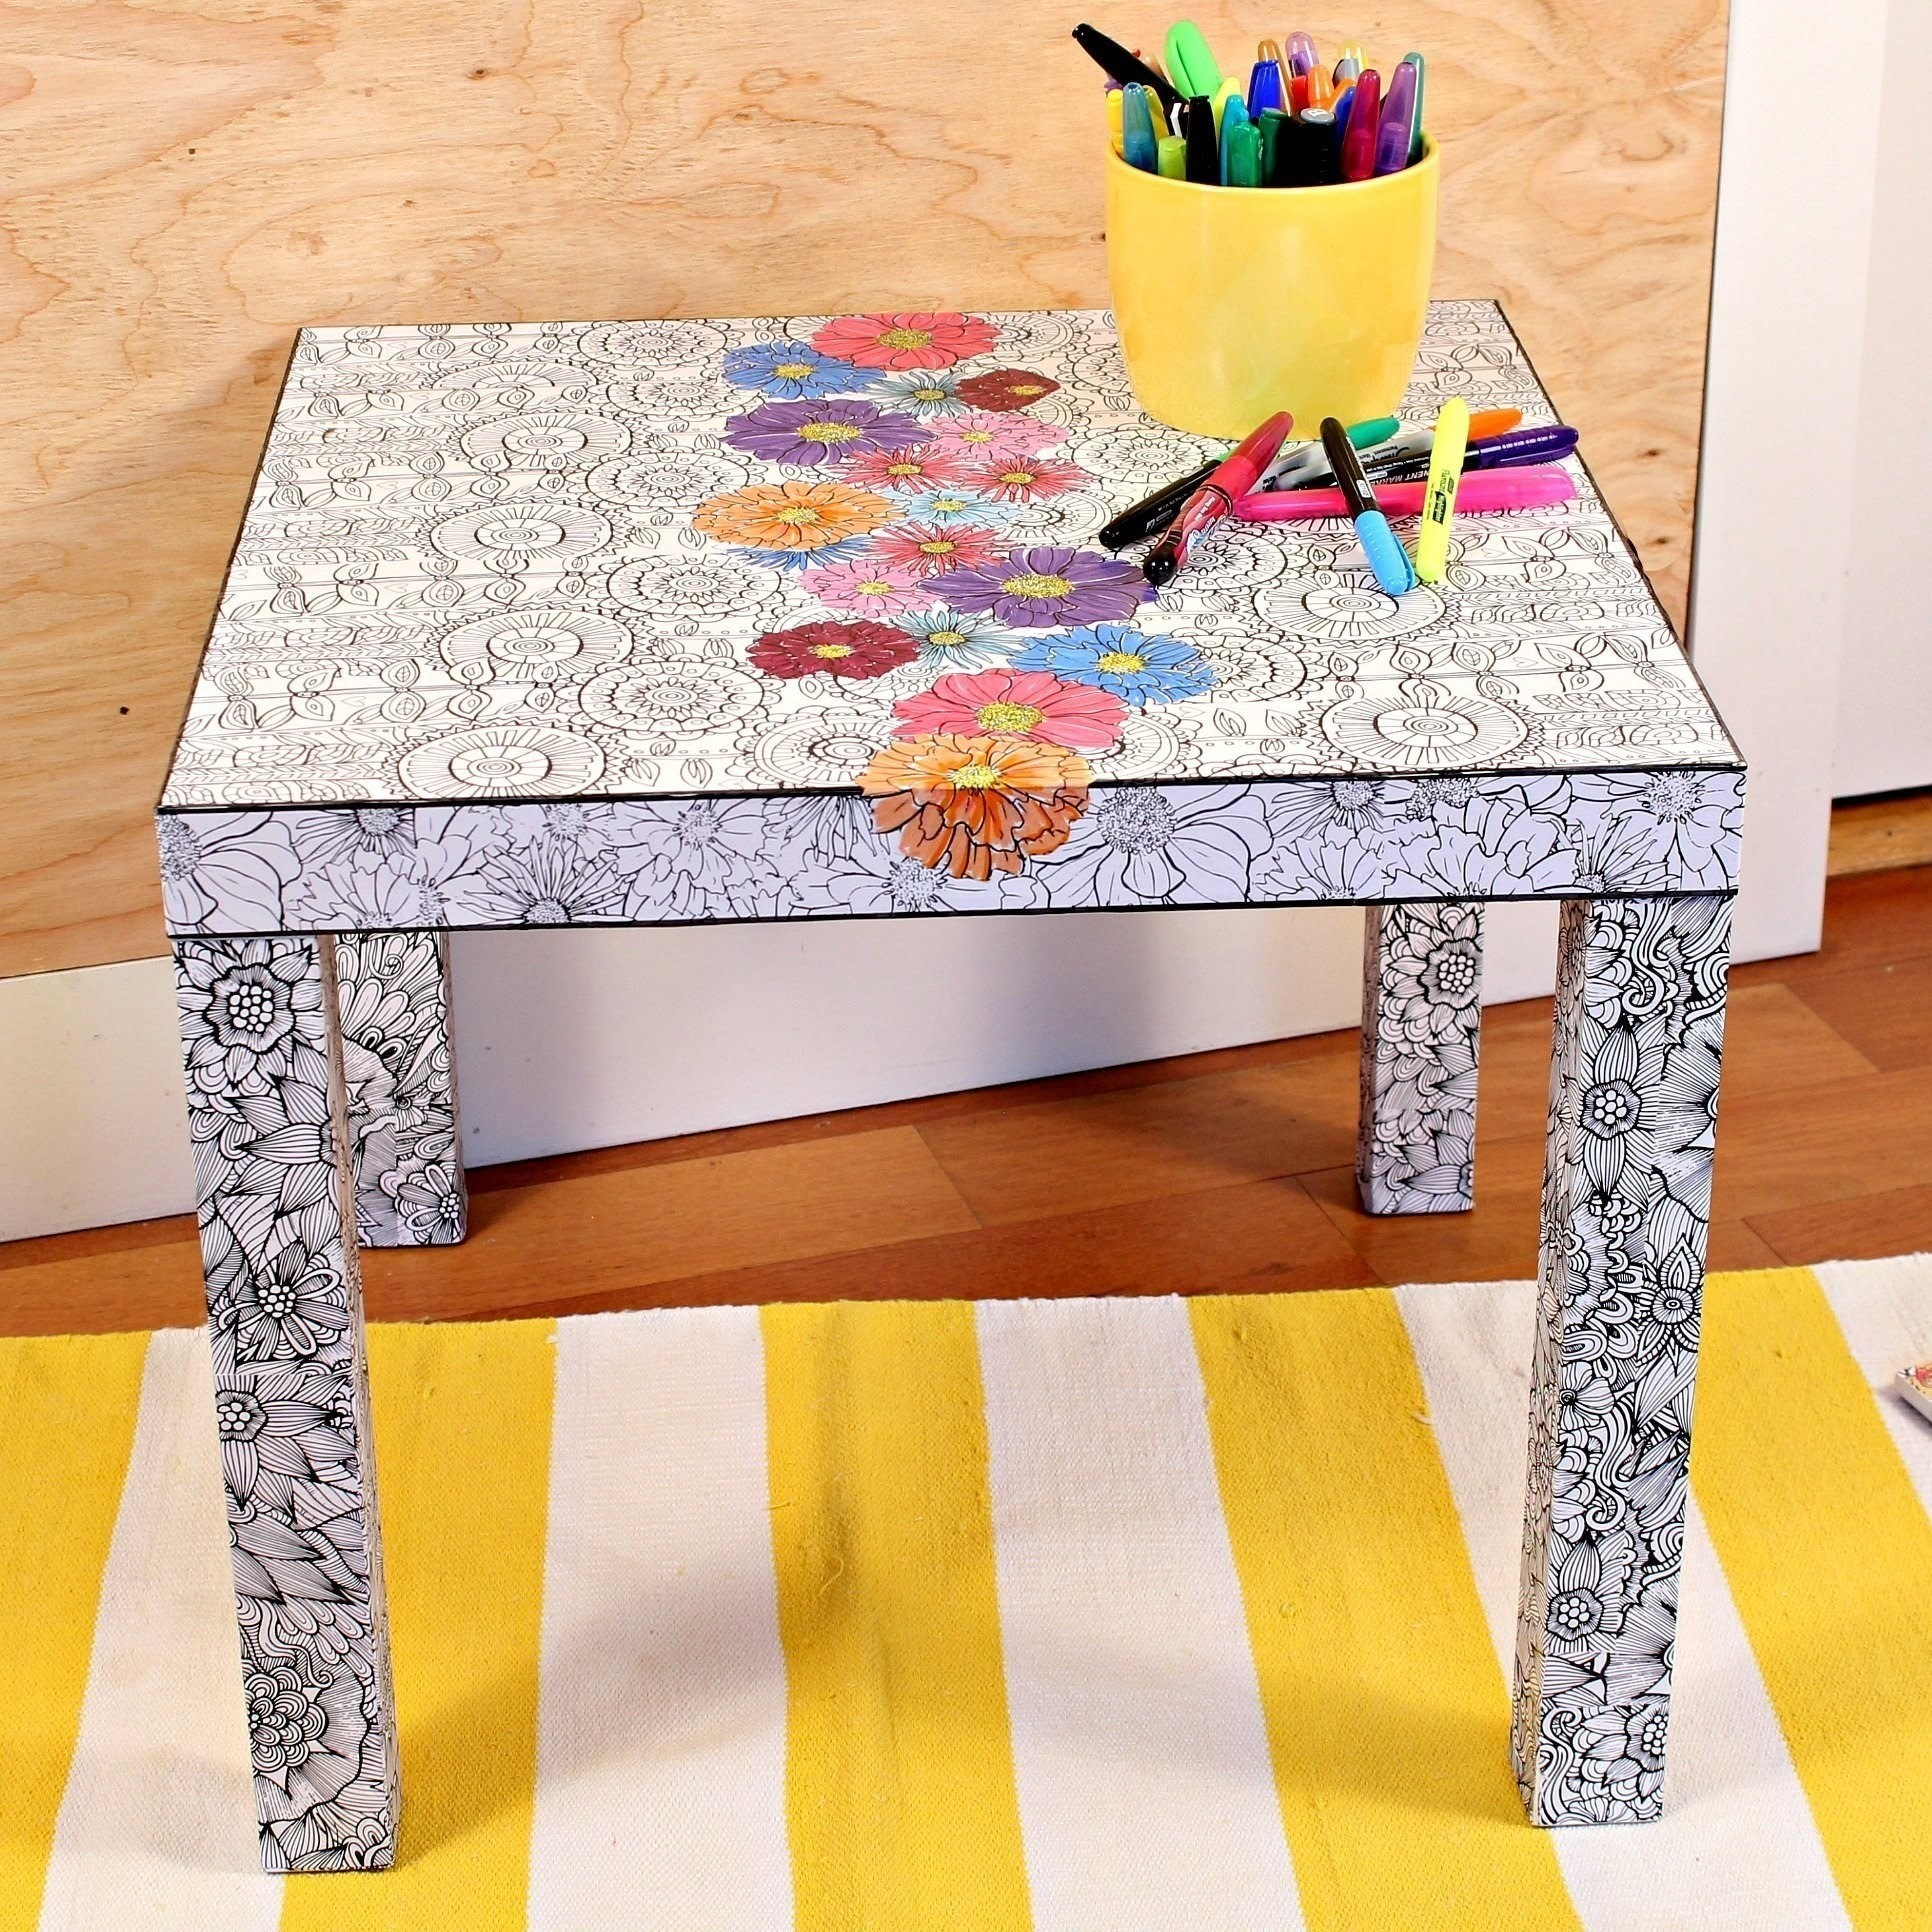 Adult Coloring Book Ikea Hack · How To Make A Side Table